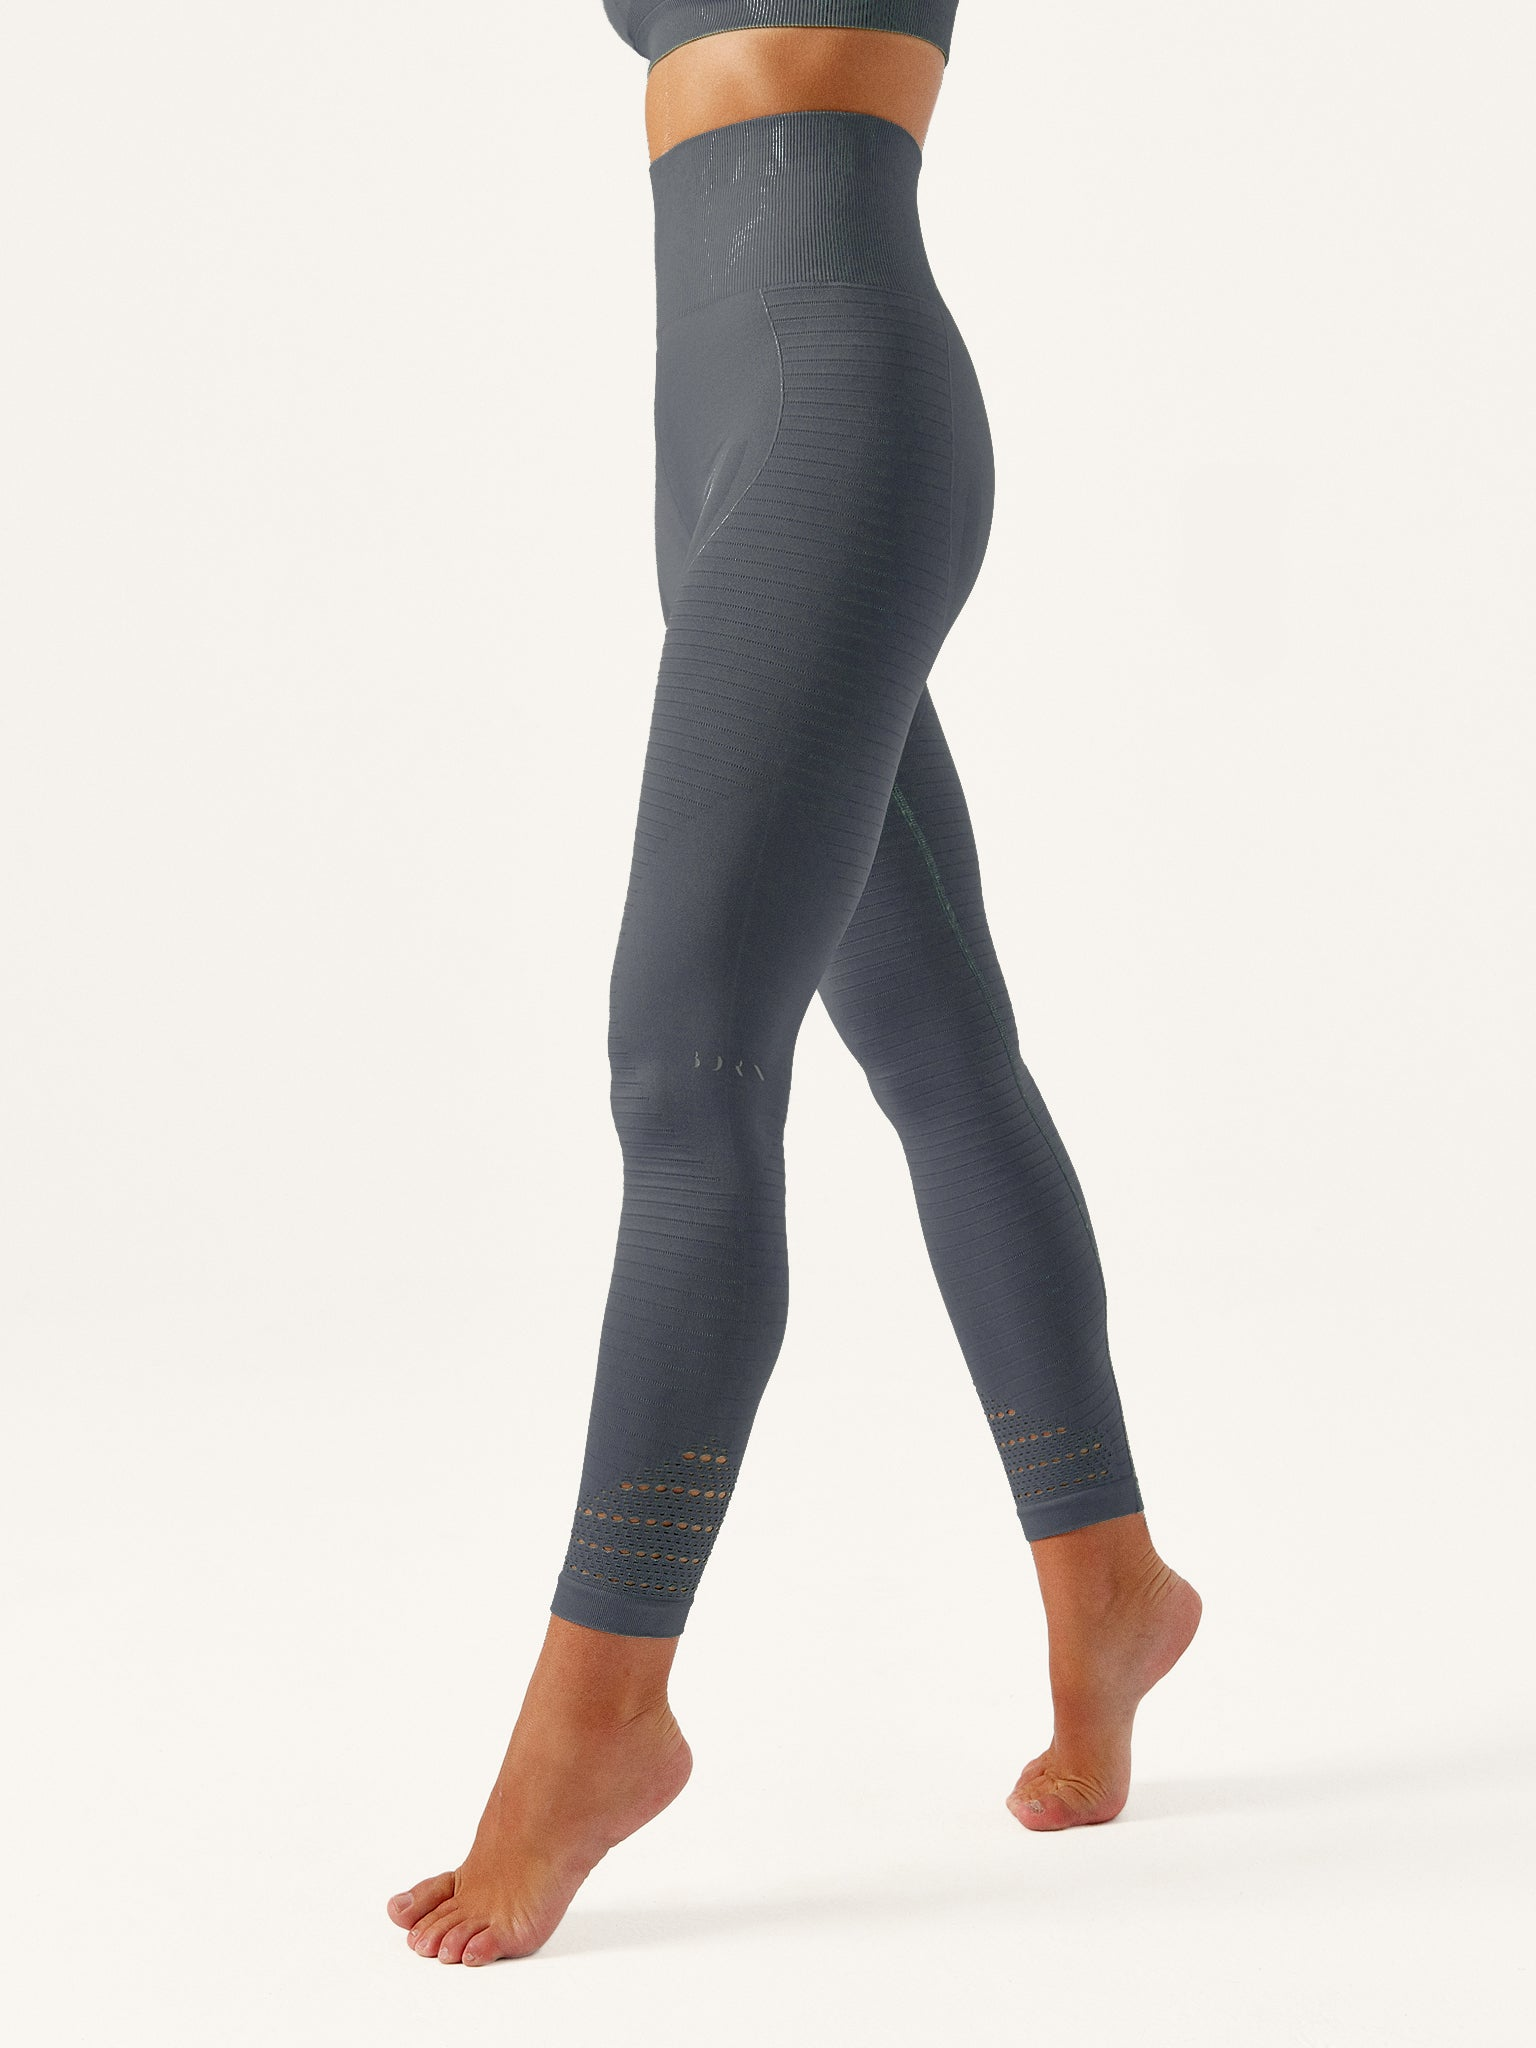 Legging Hatha Grey